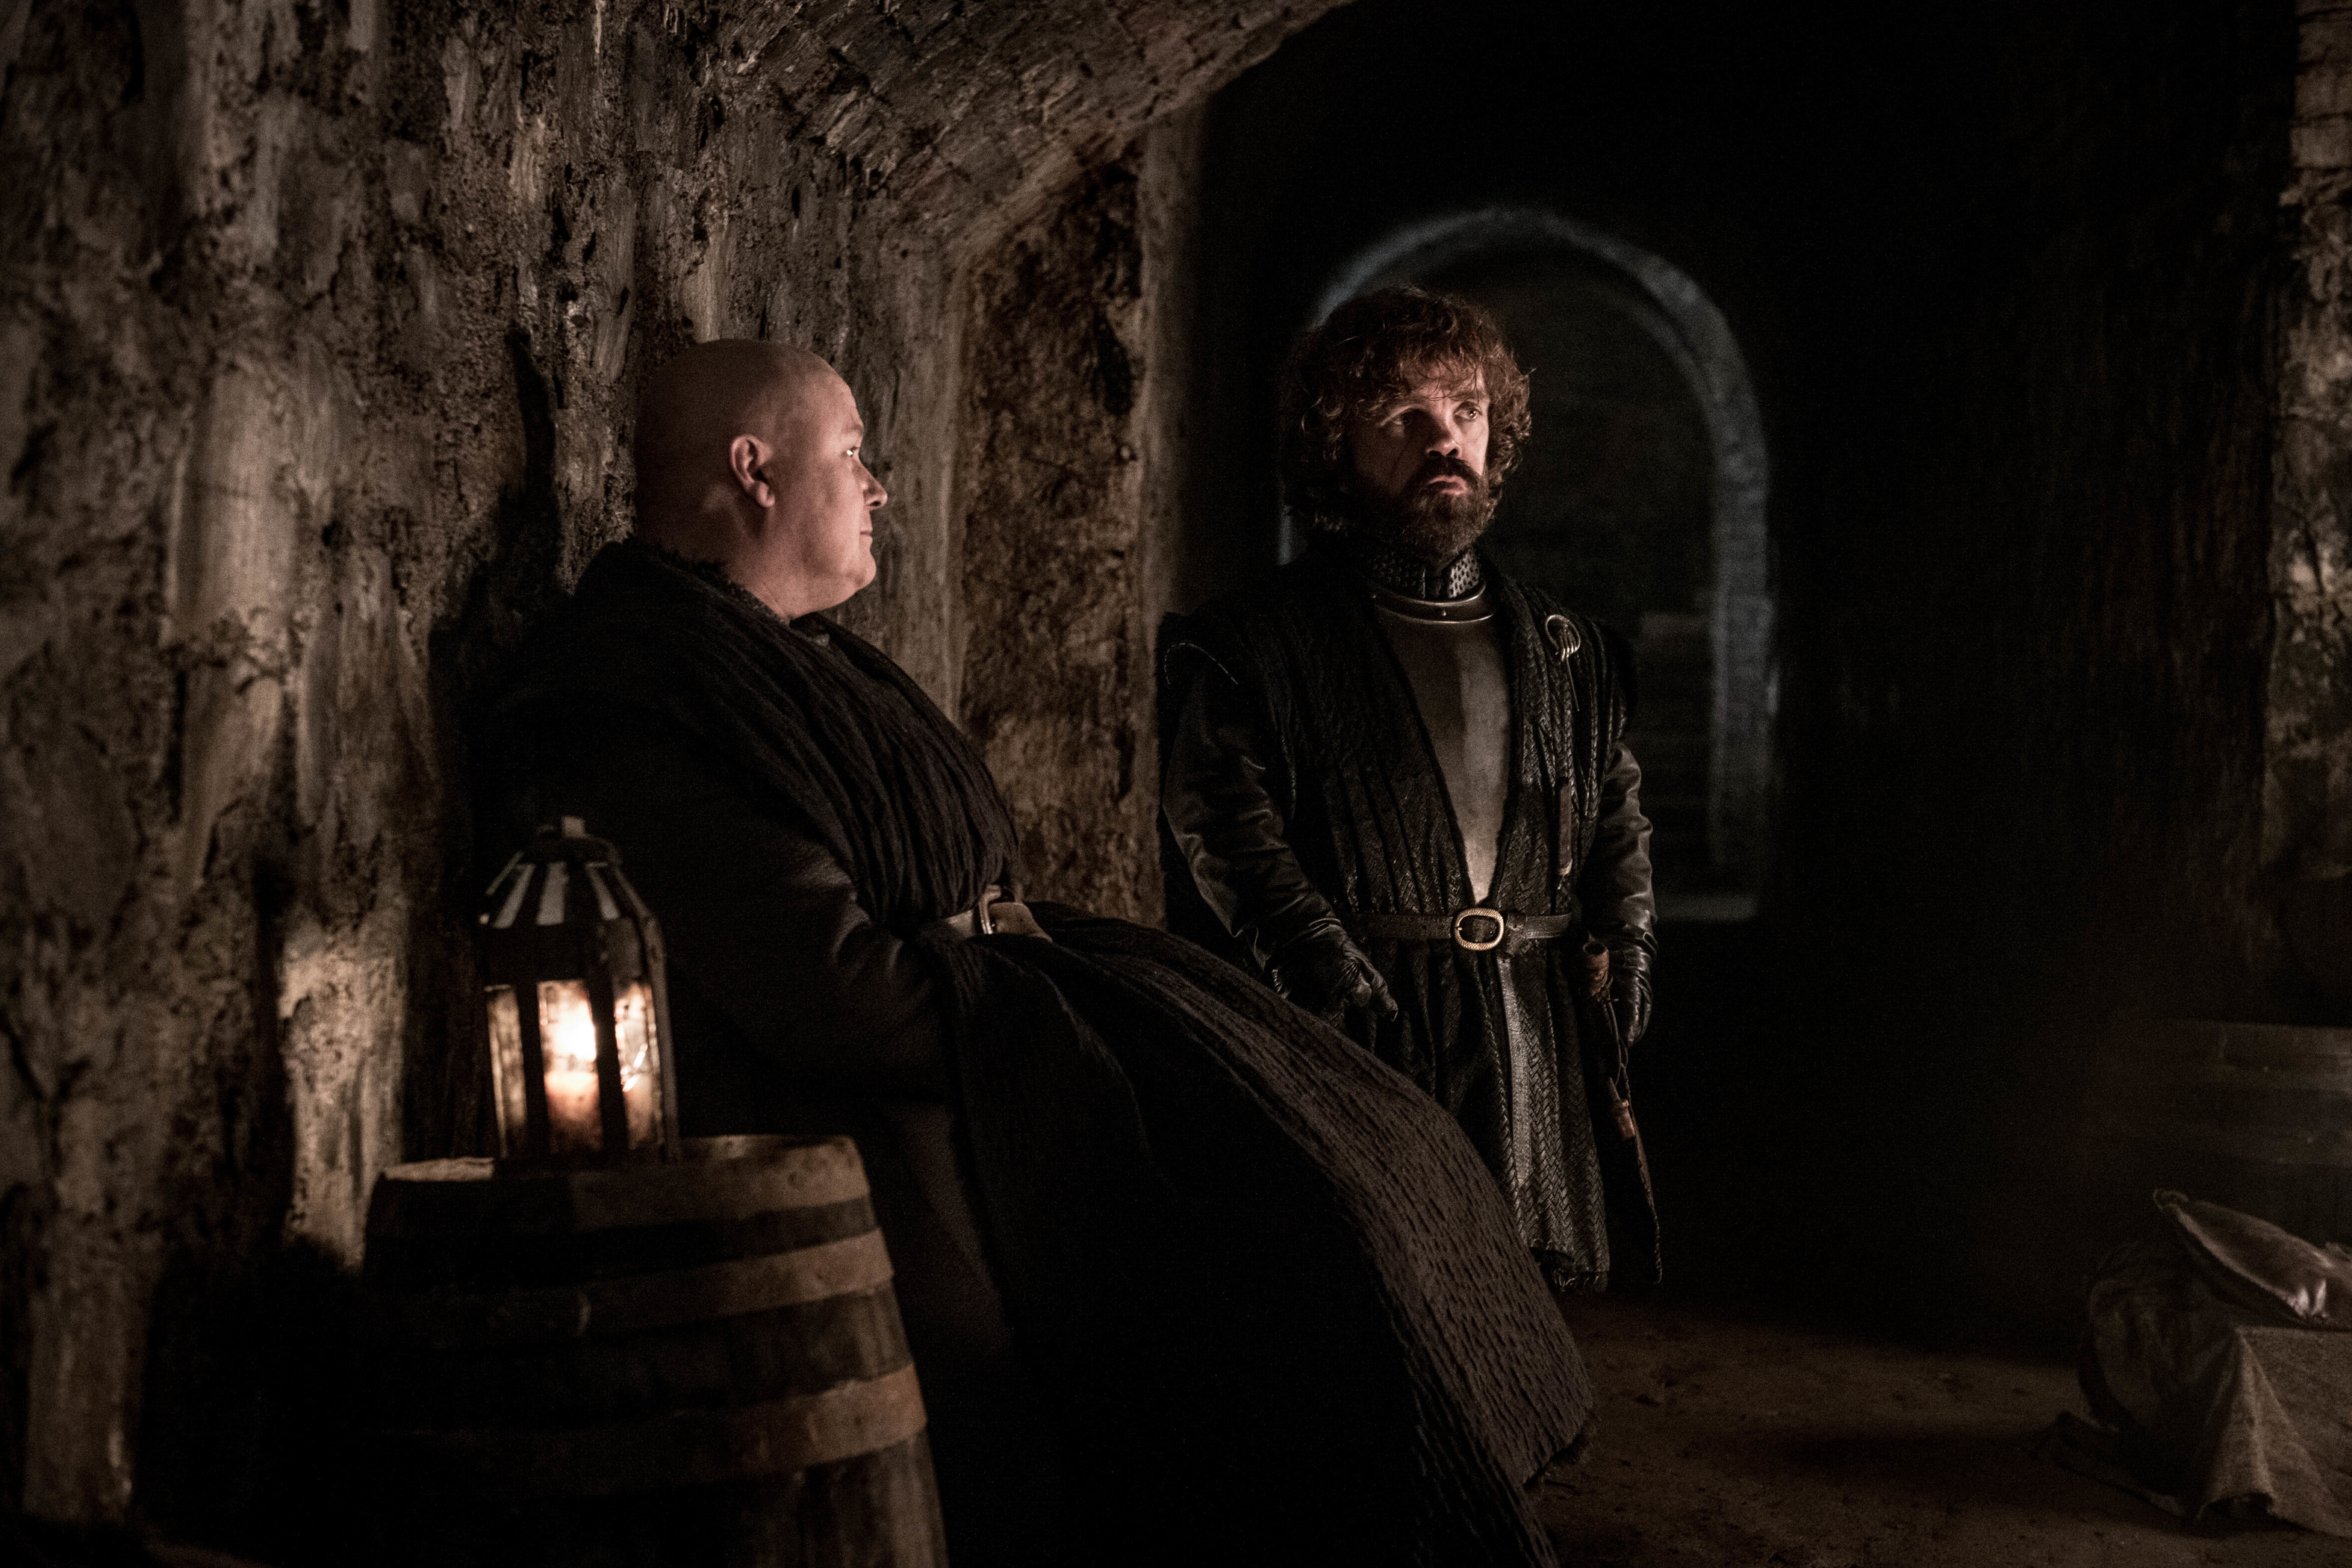 Conleth Hill as Varys and Peter Dinklage as Tyrion Lannister.